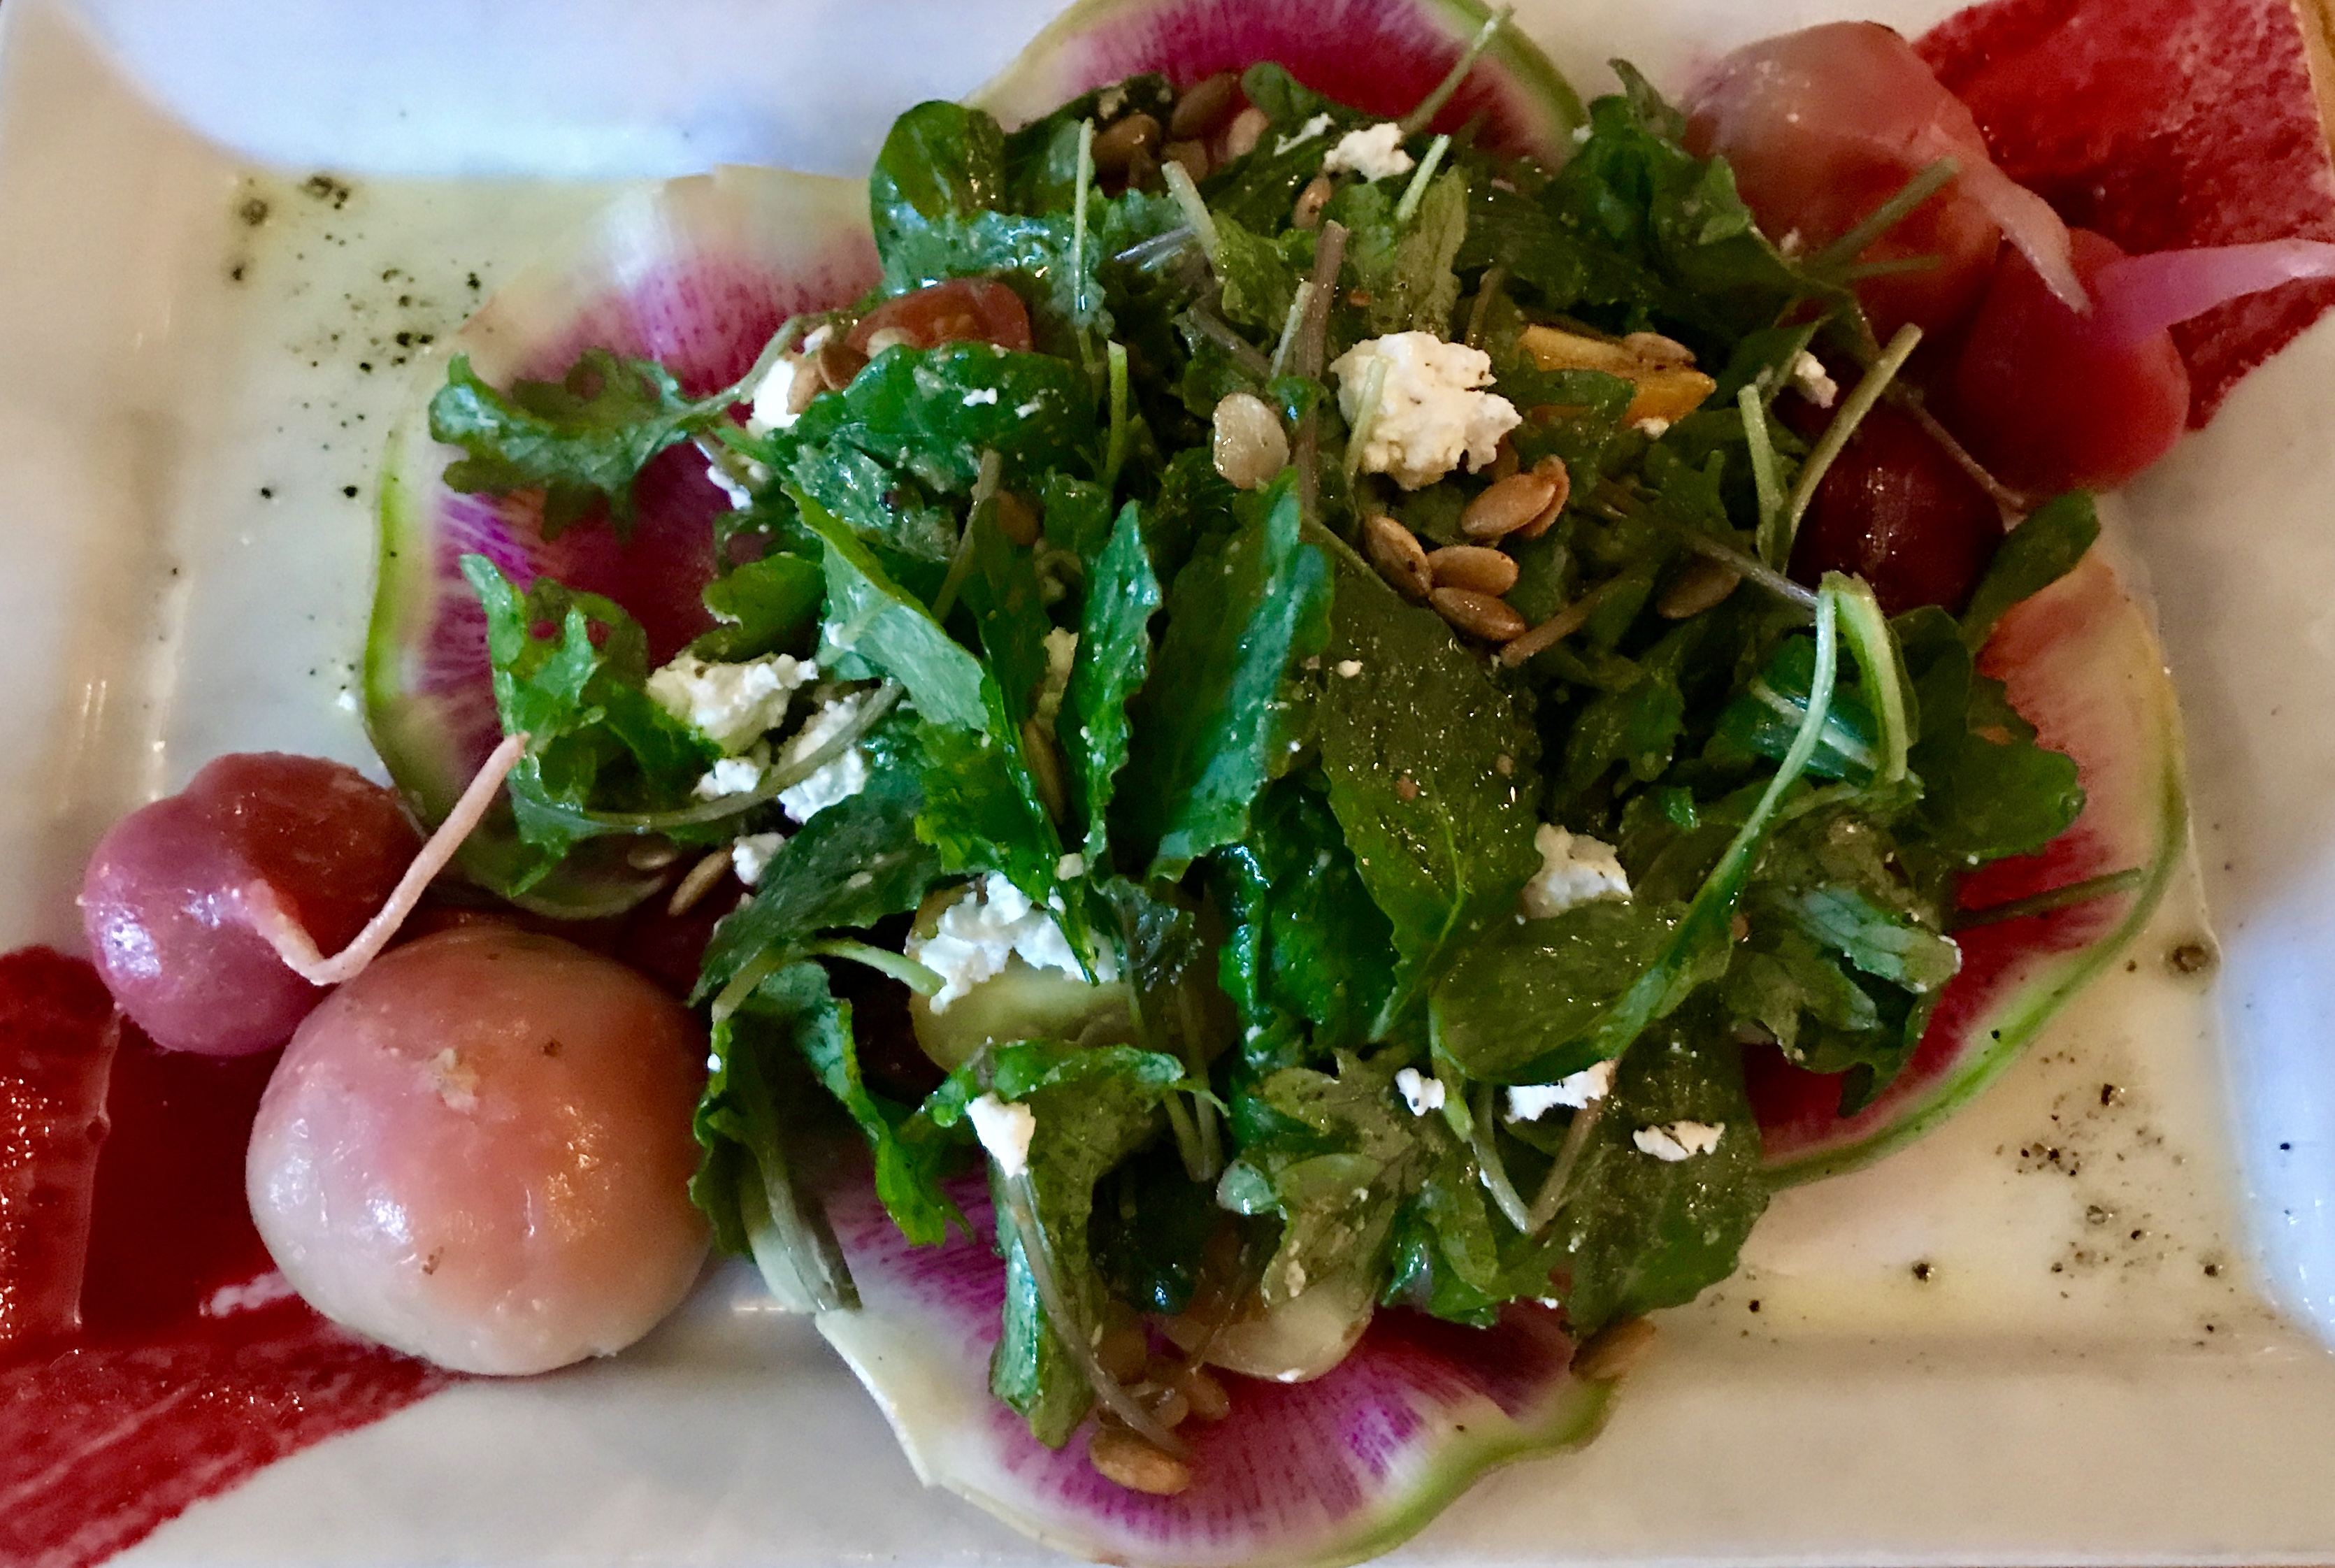 Brick & Mortar - Beet Salad